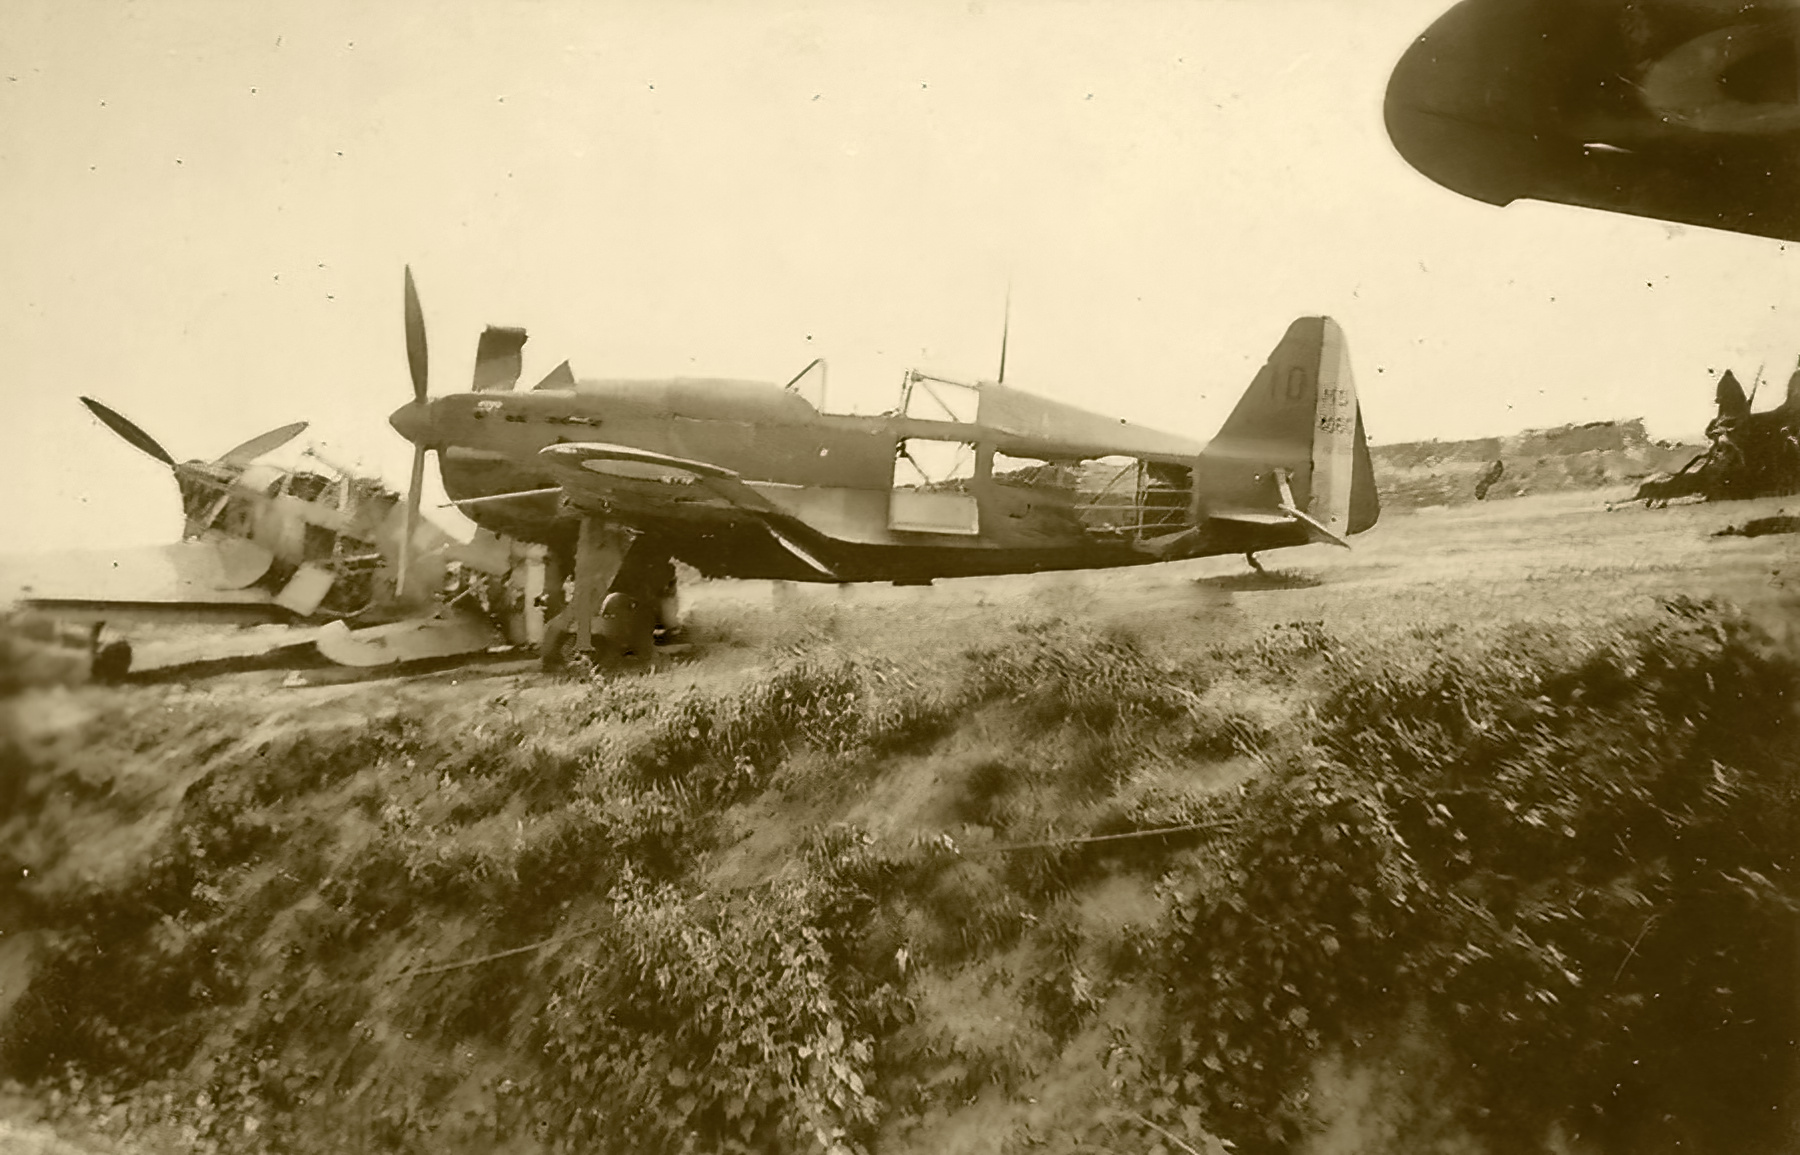 French Airforce Morane Saulnier MS 406C1 Blue 10 grounded at a French airbased left abandoned France 1940 ebay 01